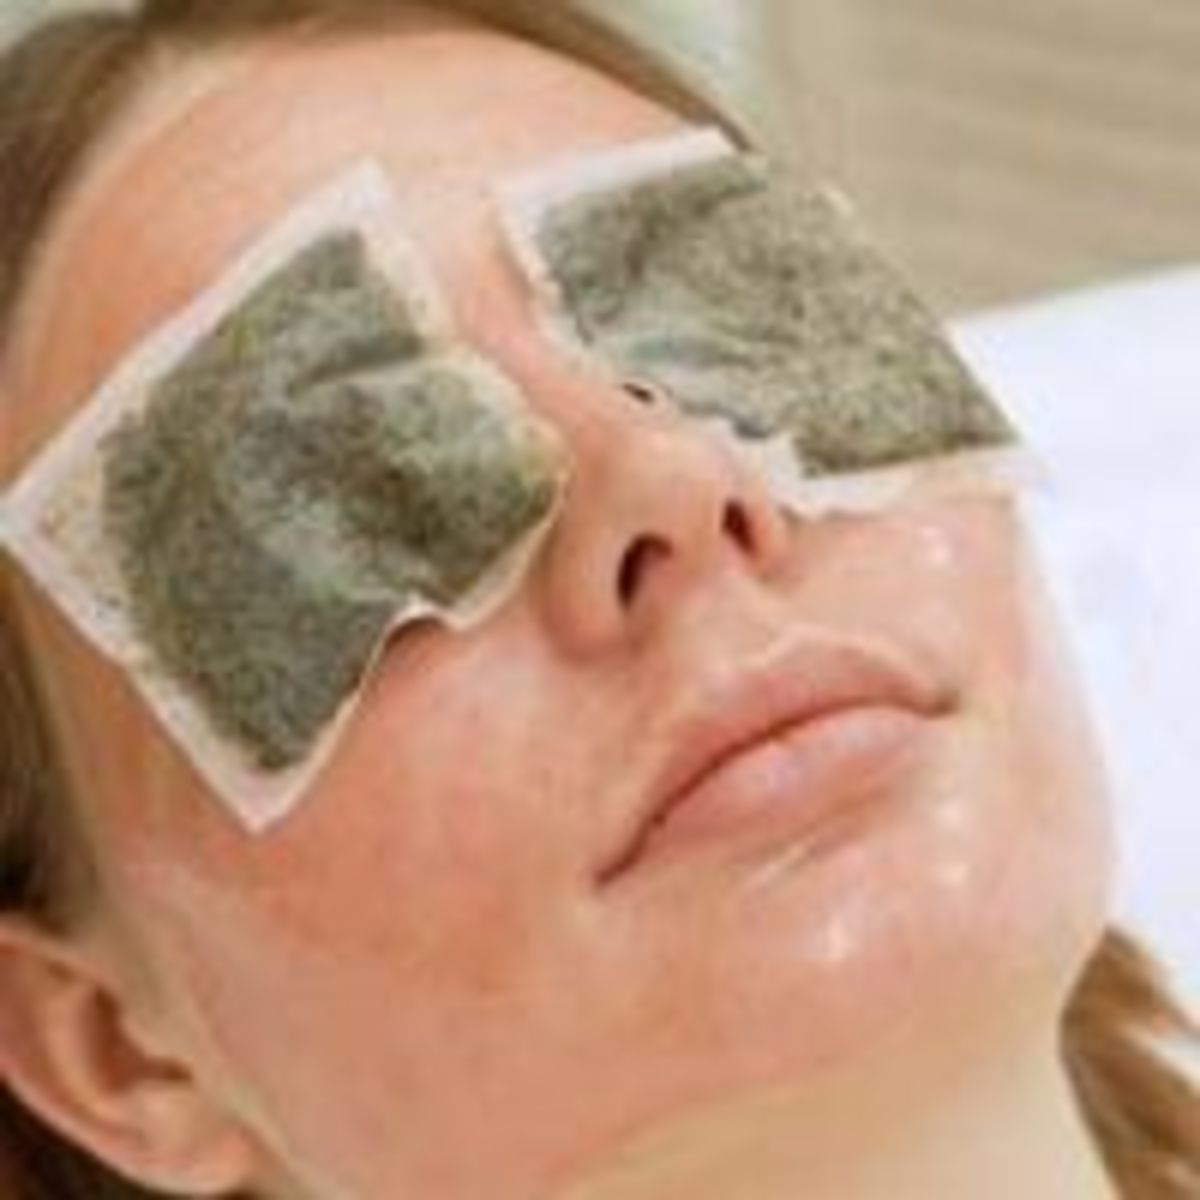 Relax and rid yourself of dark under-eye circles with cool teabags. Soak the bags in cold water and than place on eyes for 10 minutes.